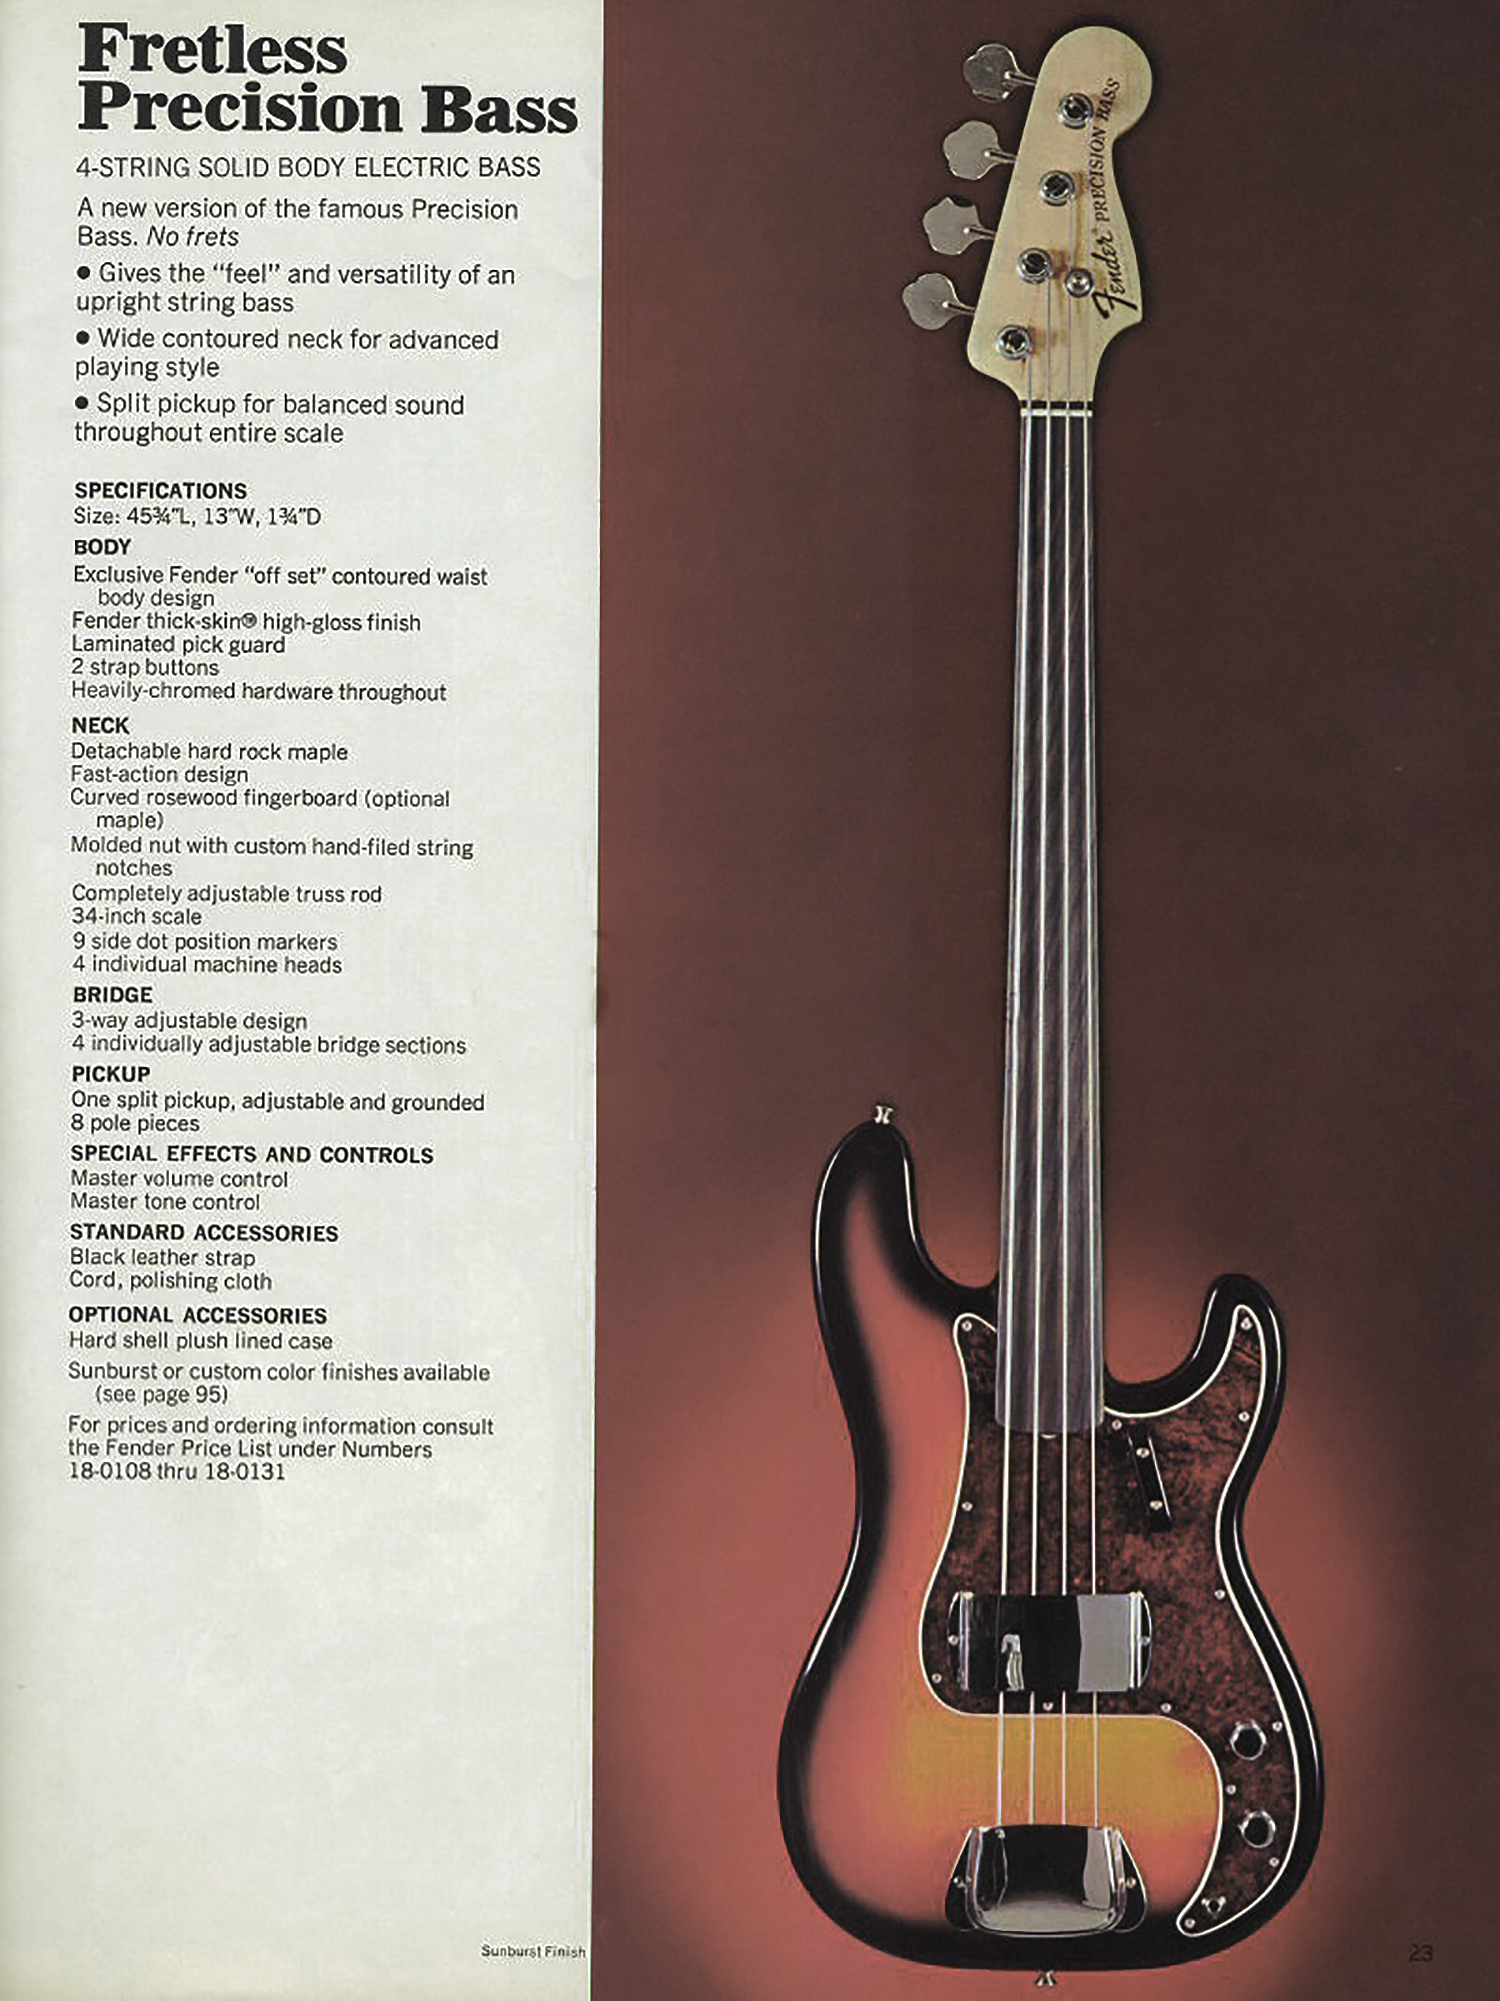 Fender Catalog, circa 1970 when the Fretless Precision was introduced